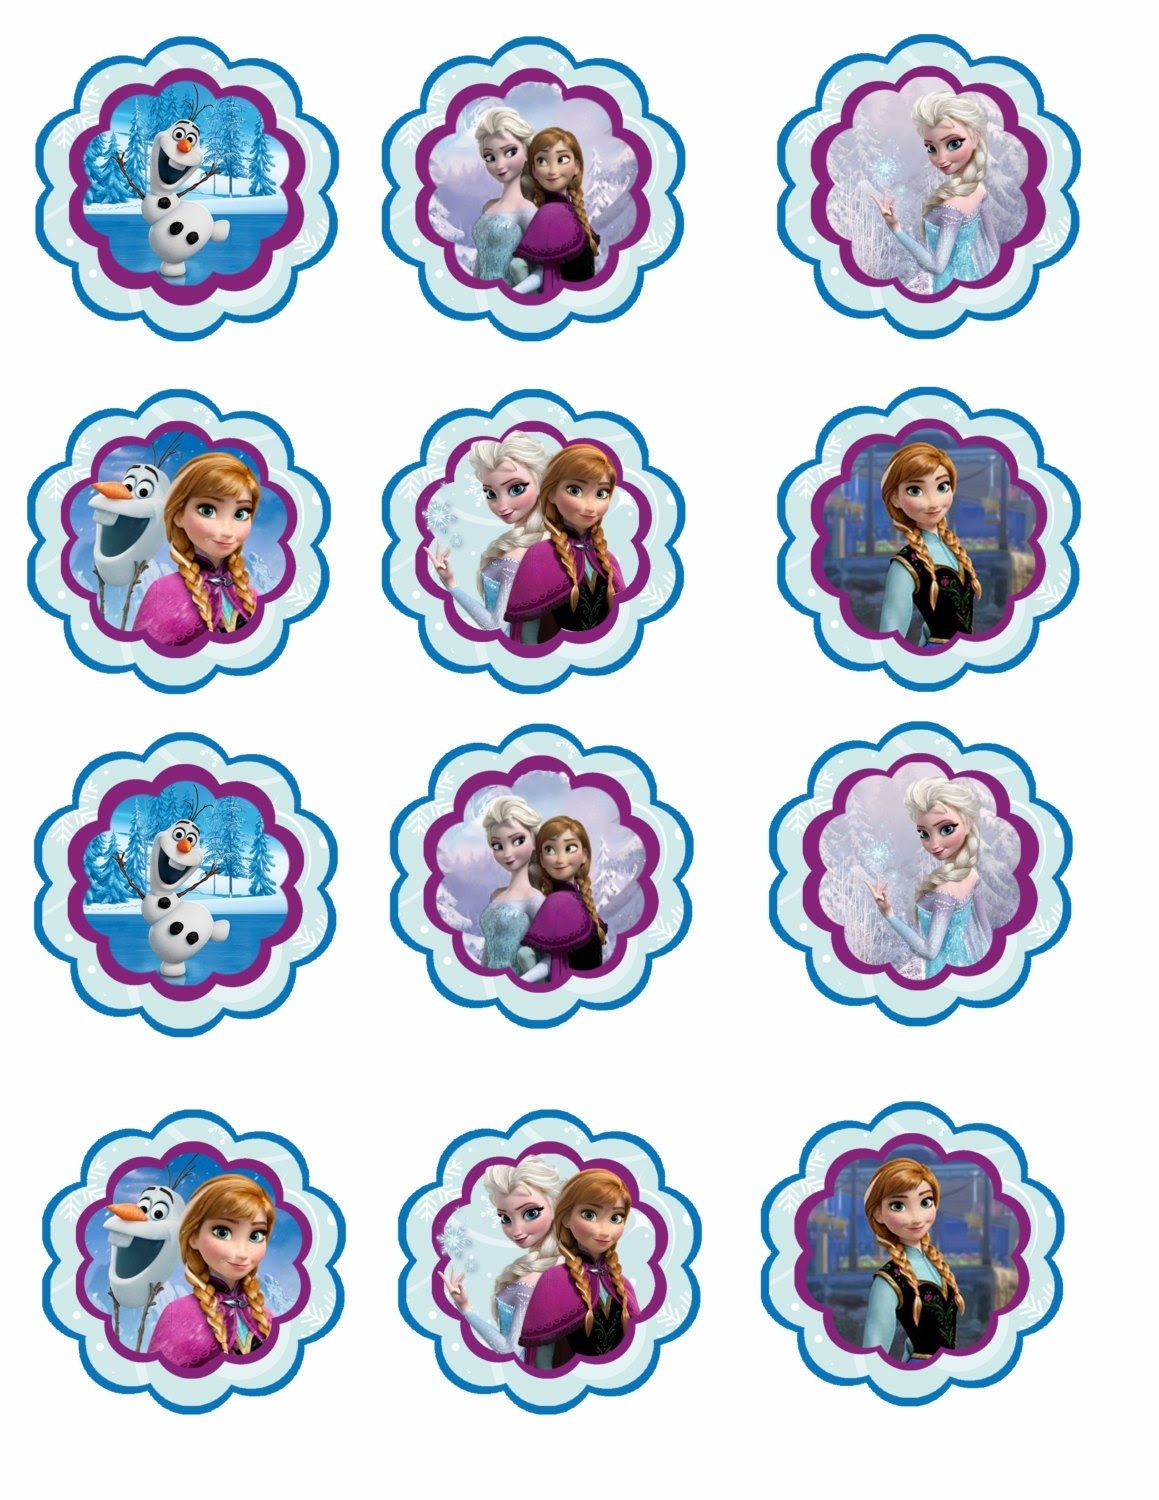 Frozen: Free Printable Toppers. - Oh My Fiesta! In English - Free Frozen Printables